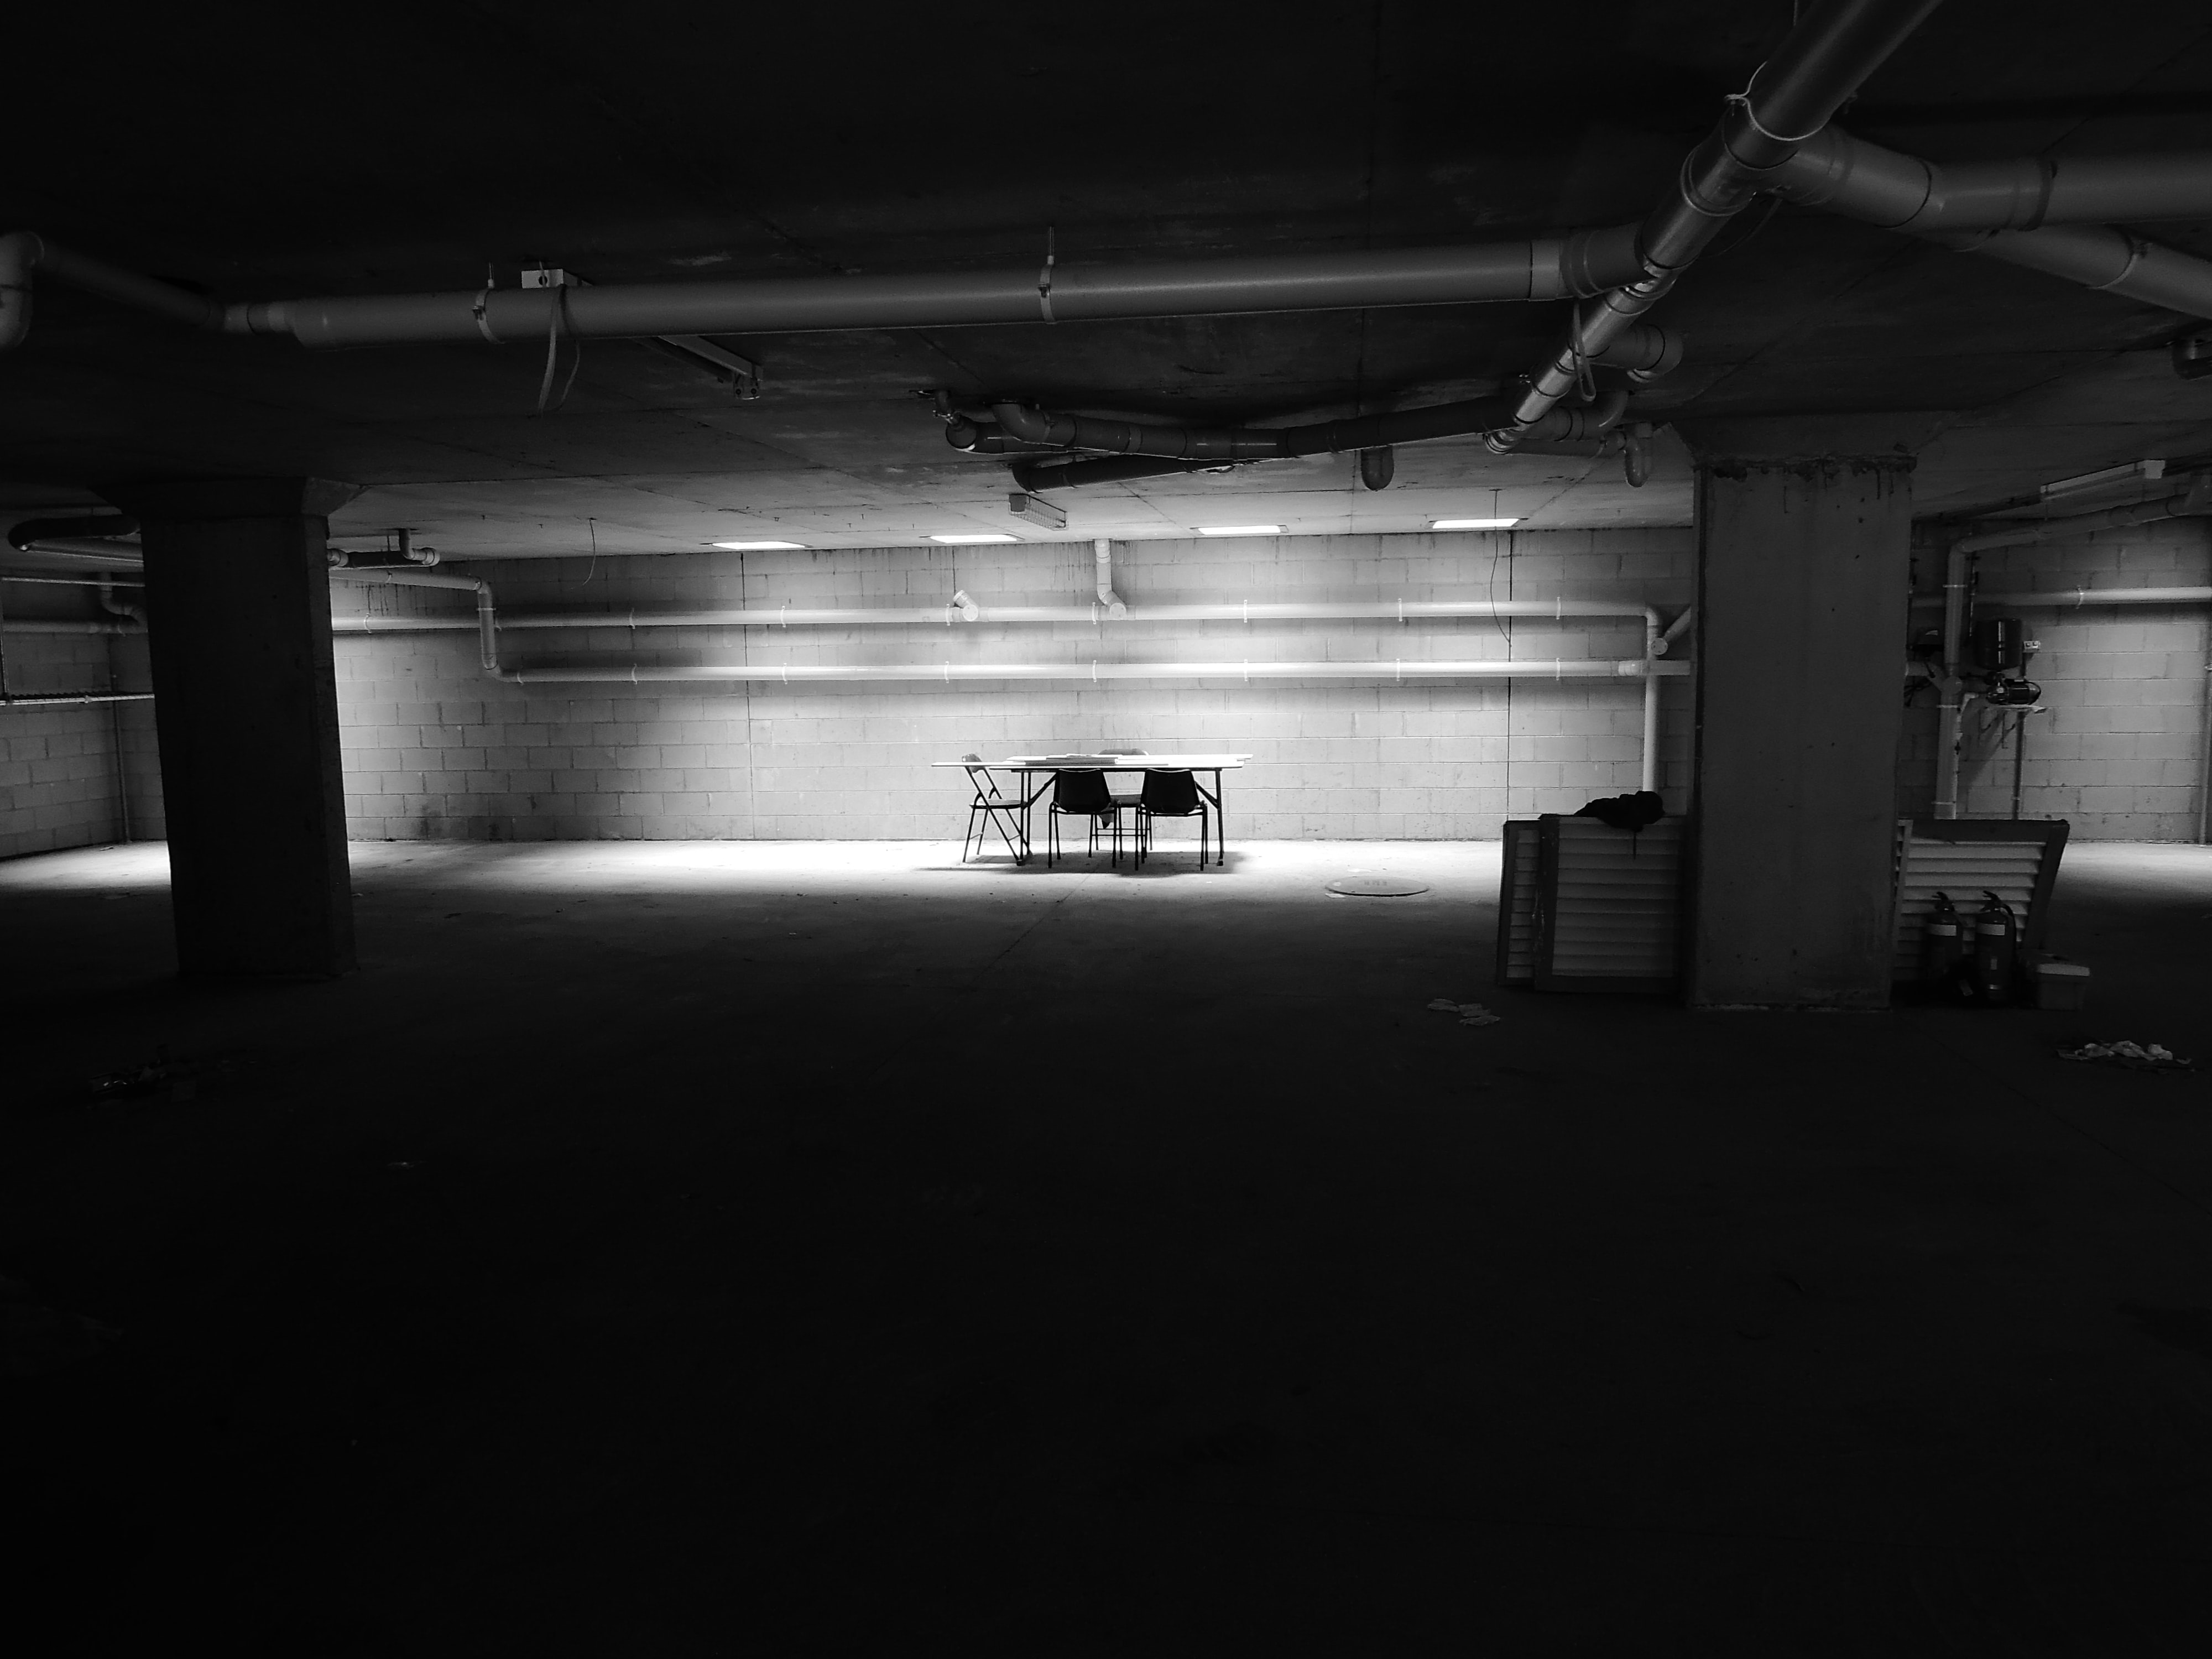 table with chairs near wall in a dark room